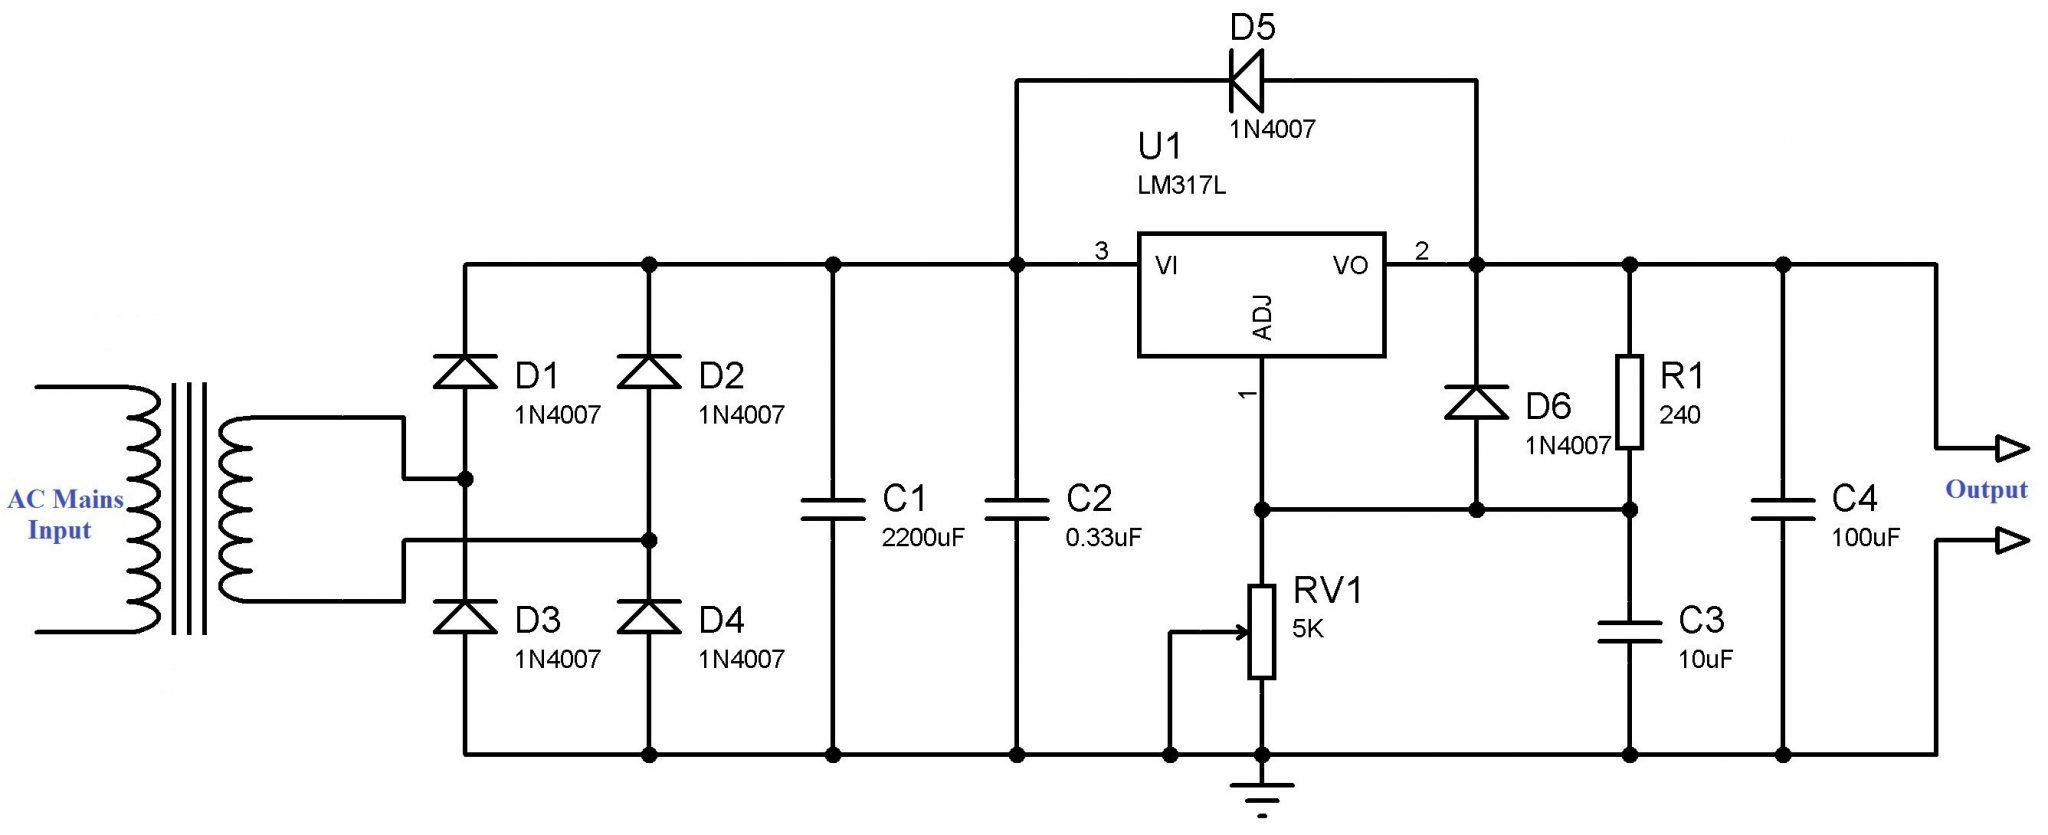 Complete Circuit Diagram. Variable Power Supply using LM317